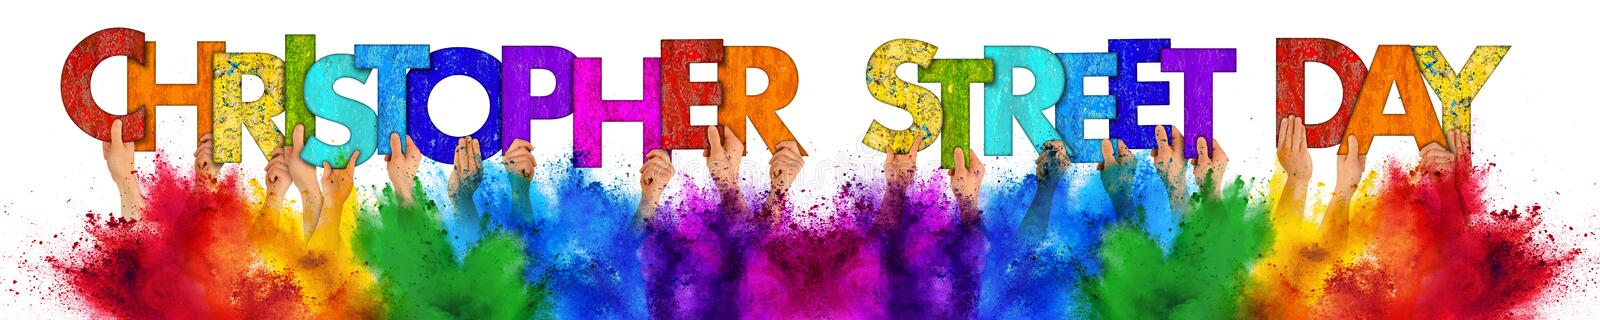 People holding up wooden Christopher street day colorful rainbow lettering holi powder color splash isolated white background stock images